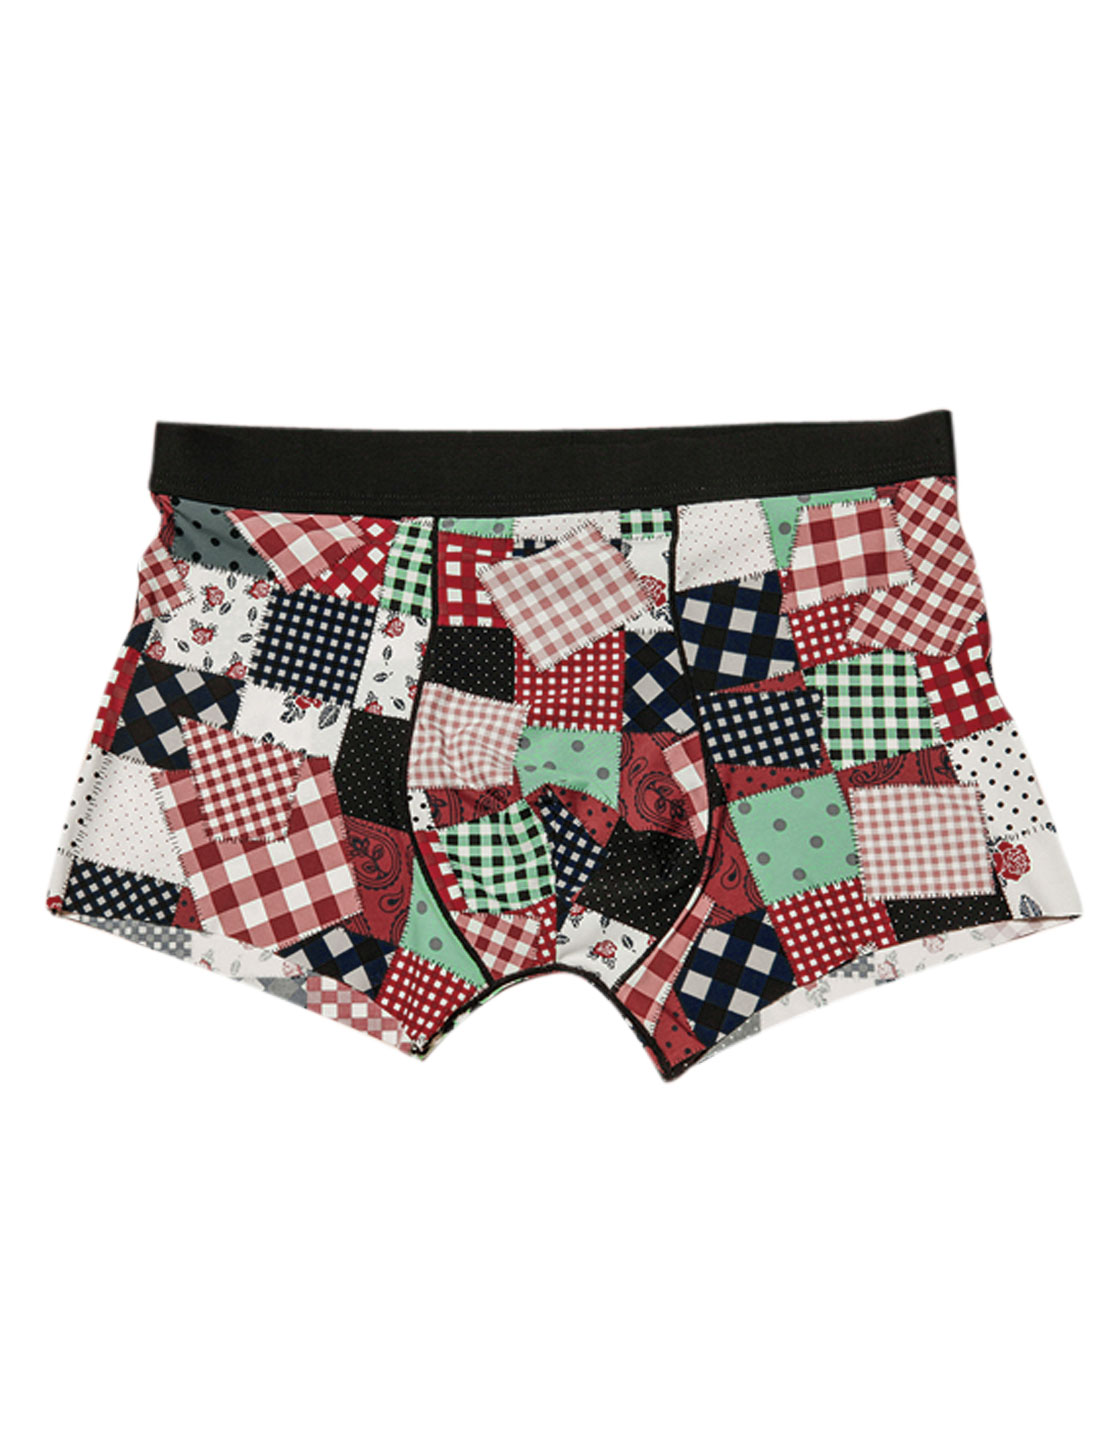 Men Floral Plaids Dots Print Patched Design Soft Boxer Briefs Light Green Burgundy W30